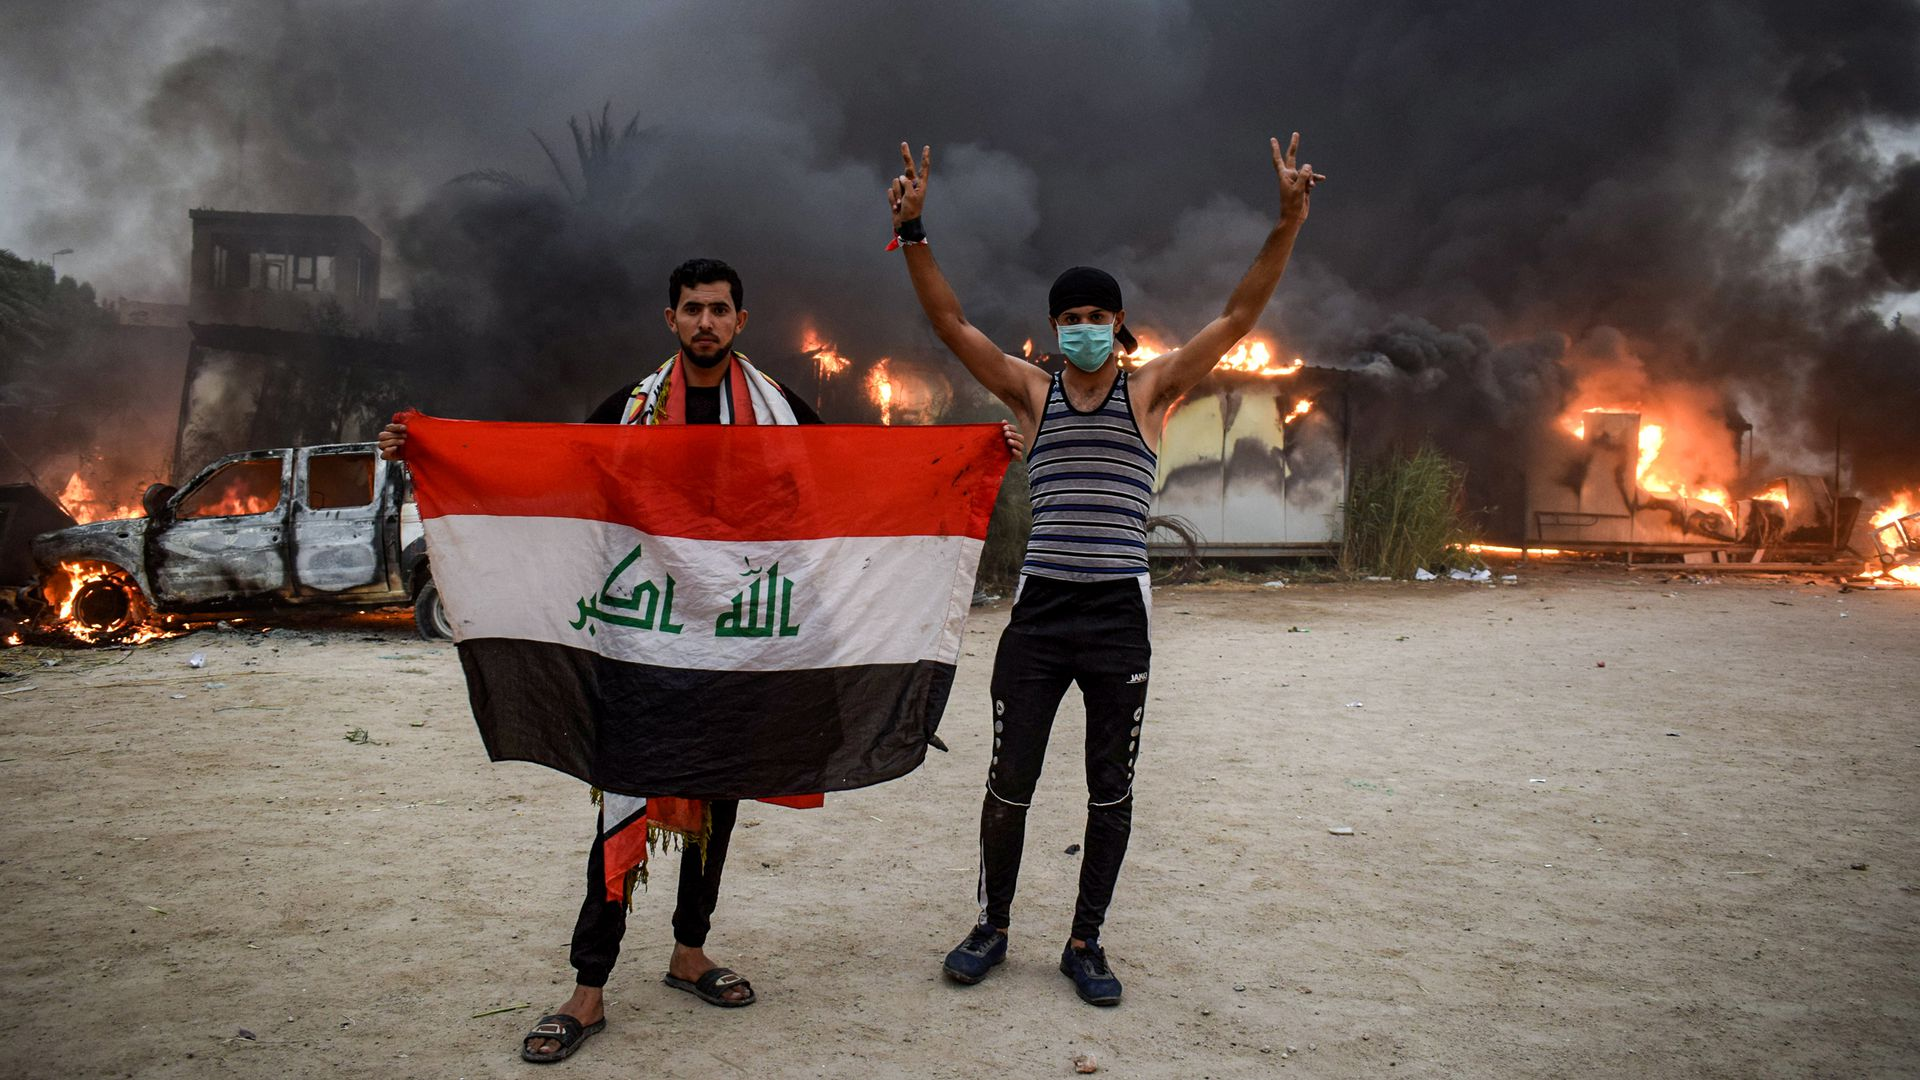 Protests burning in Iraq and Lebanon could singe Iran